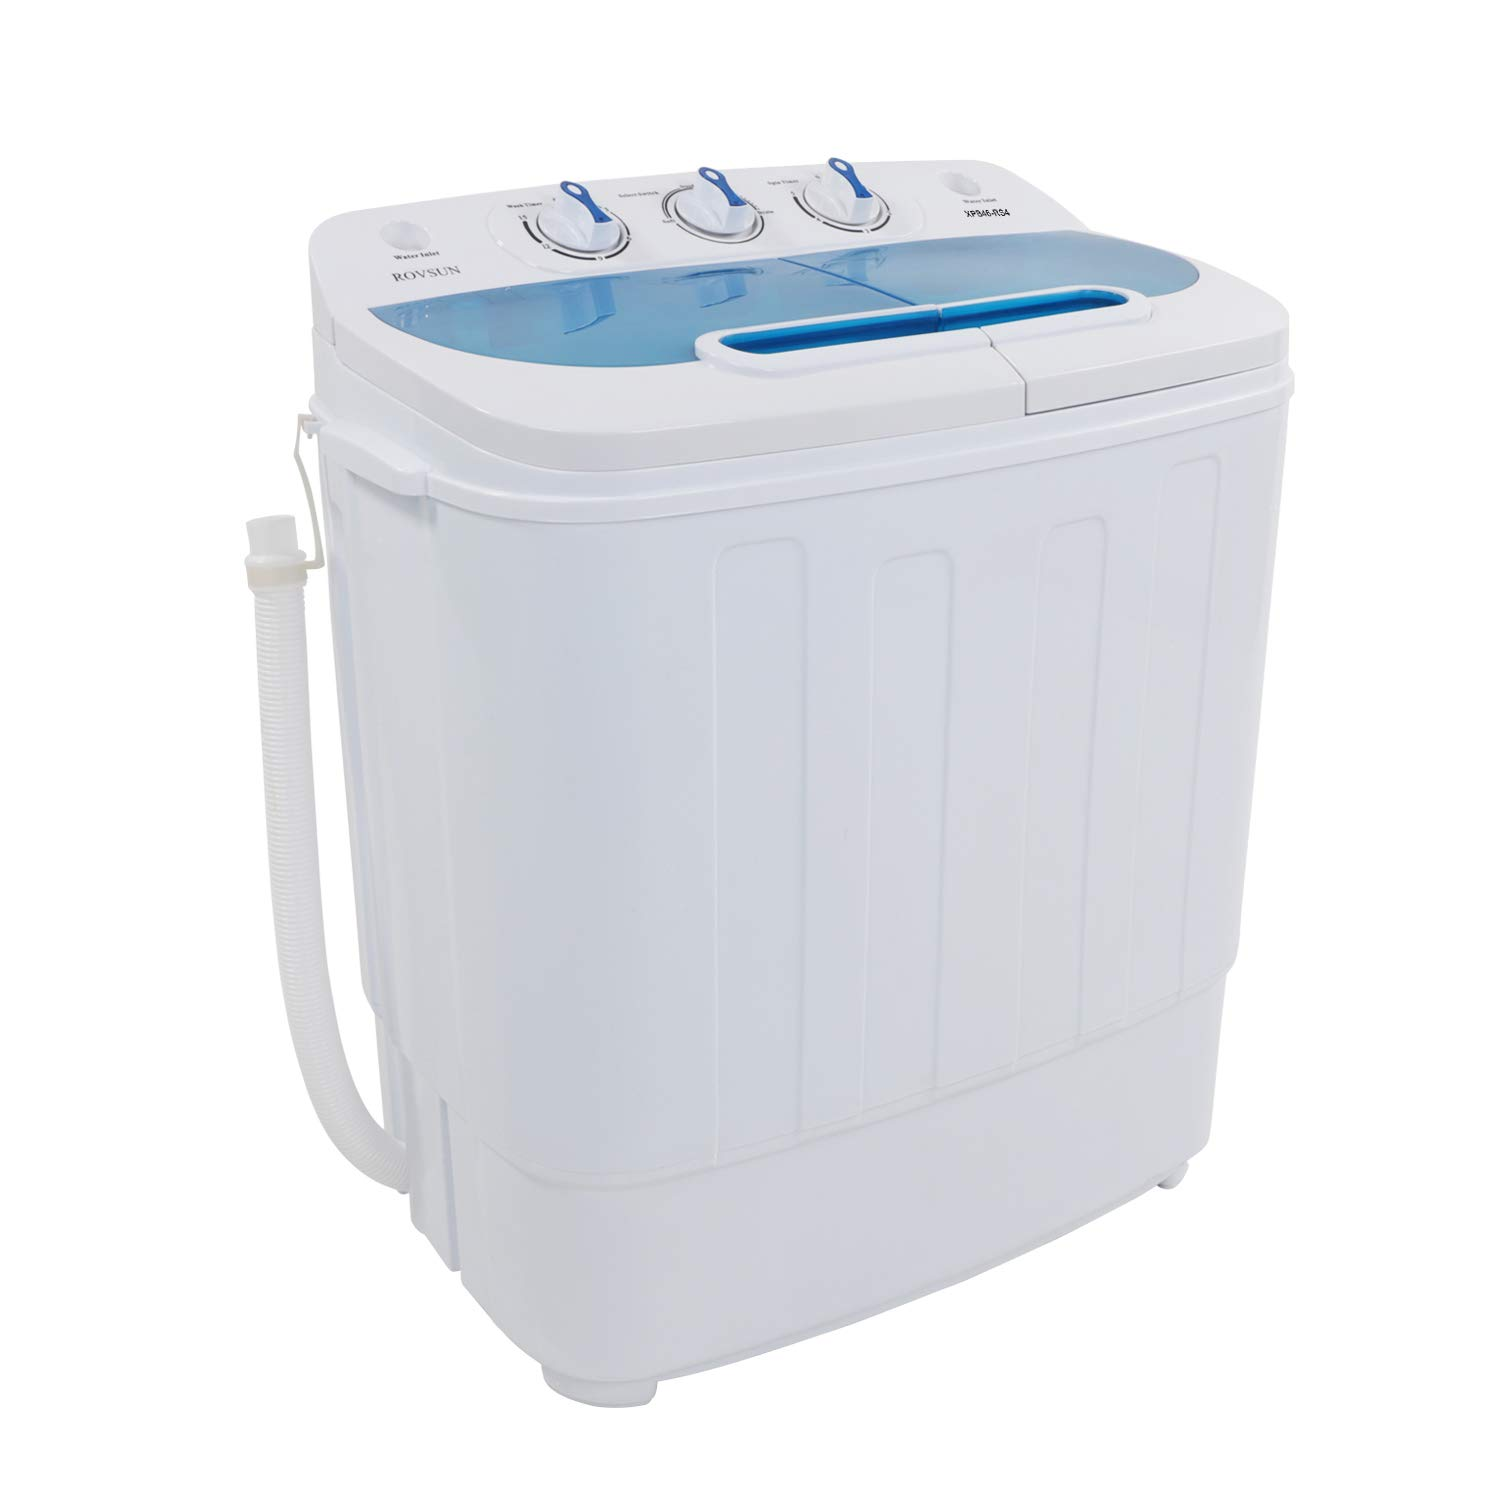 ROVSUN 13.4LBS Portable Twin Tub Washing Machine, Electric Compact Washer, Energy Saving Spin Cycle w/Hose, Great for Home RV Camping Mini Dorms Apartments College Rooms by ROVSUN